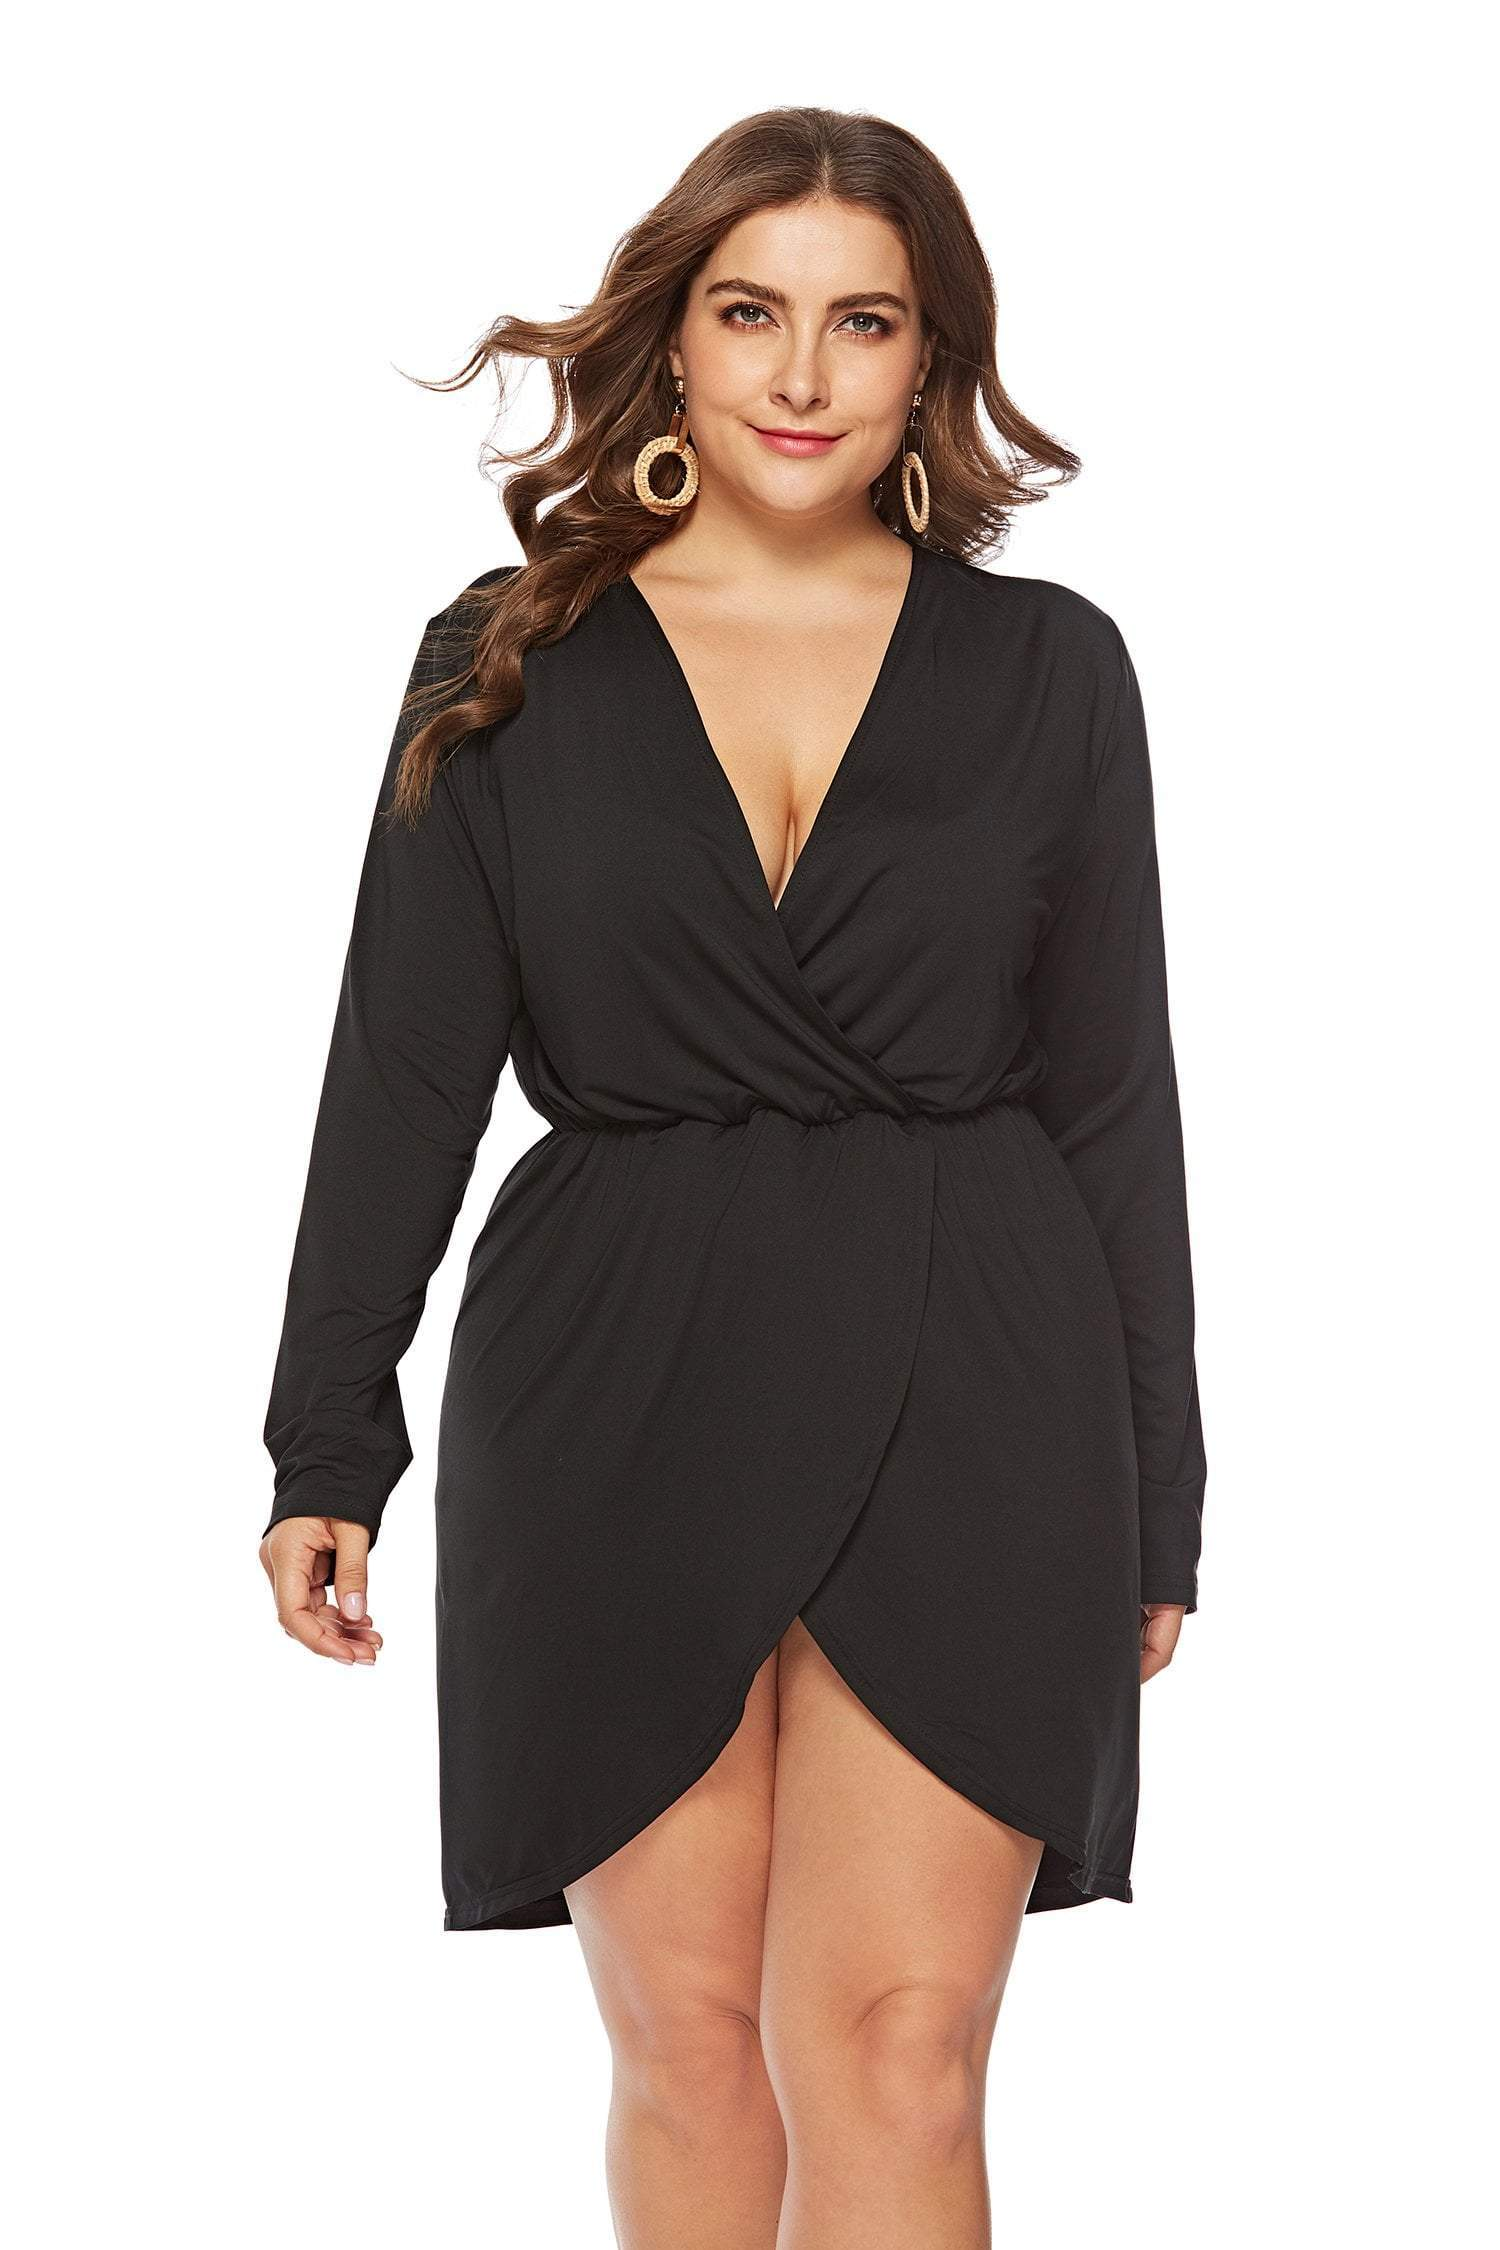 plus size Mini Dress XL / AUS 14 / Black Estelle Dress